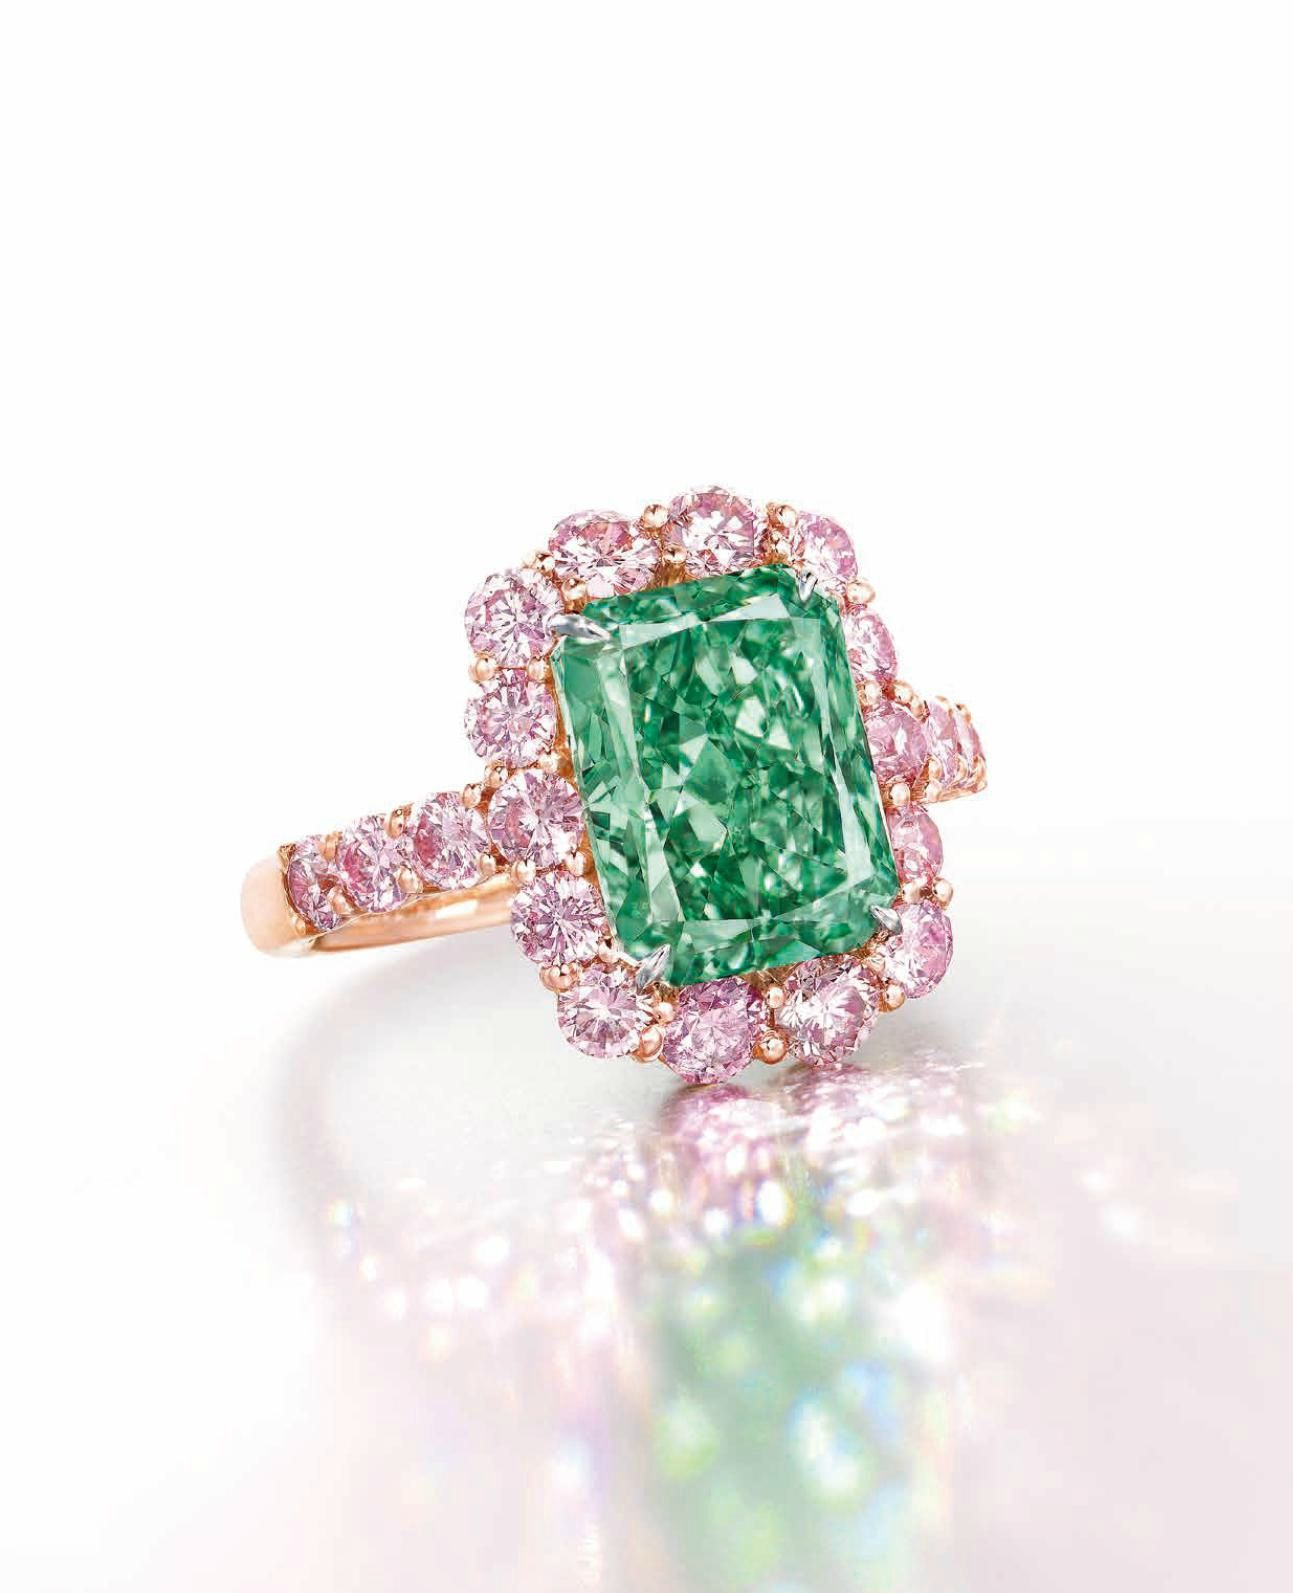 A SUPERB COLOURED DIAMOND RING. Set with a rectangular-cut fancy vivid green diamond, weighing approximately 5.03 carats, within a circular-cut pink diamond surround, extending to the shoulders, mounted in gold, ring size 6. Price Realised USD 16,818,983 // Estimate USD 16,000,000 - USD 20,000,000. GIA / Fancy Vivid Green colour, VS2 clarity [C. Hong Kong Magnificent Jewels - 31 May 2016 - Convention Hall] #Christie's #Auction #Vivid #GreenDiamond